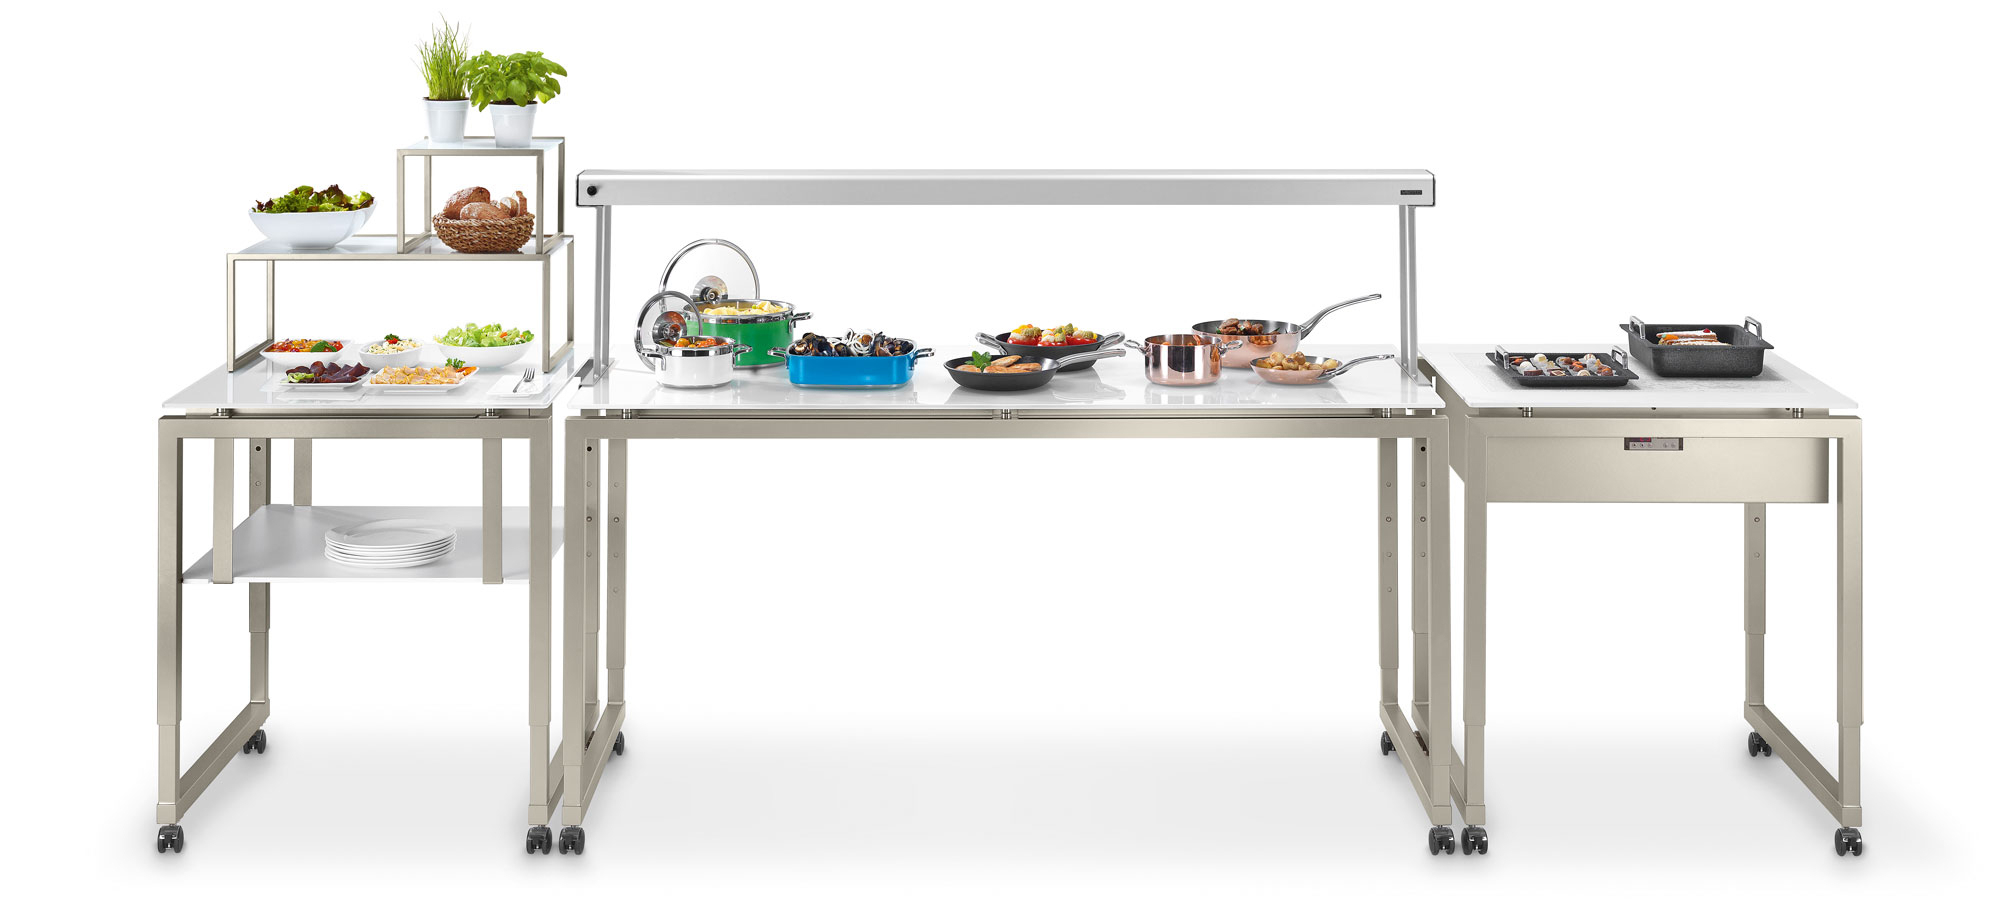 Venta Modular Buffet System – Ventadesign Throughout Contemporary Three Tier Glass Buffets With Black Metal Frame (View 30 of 30)